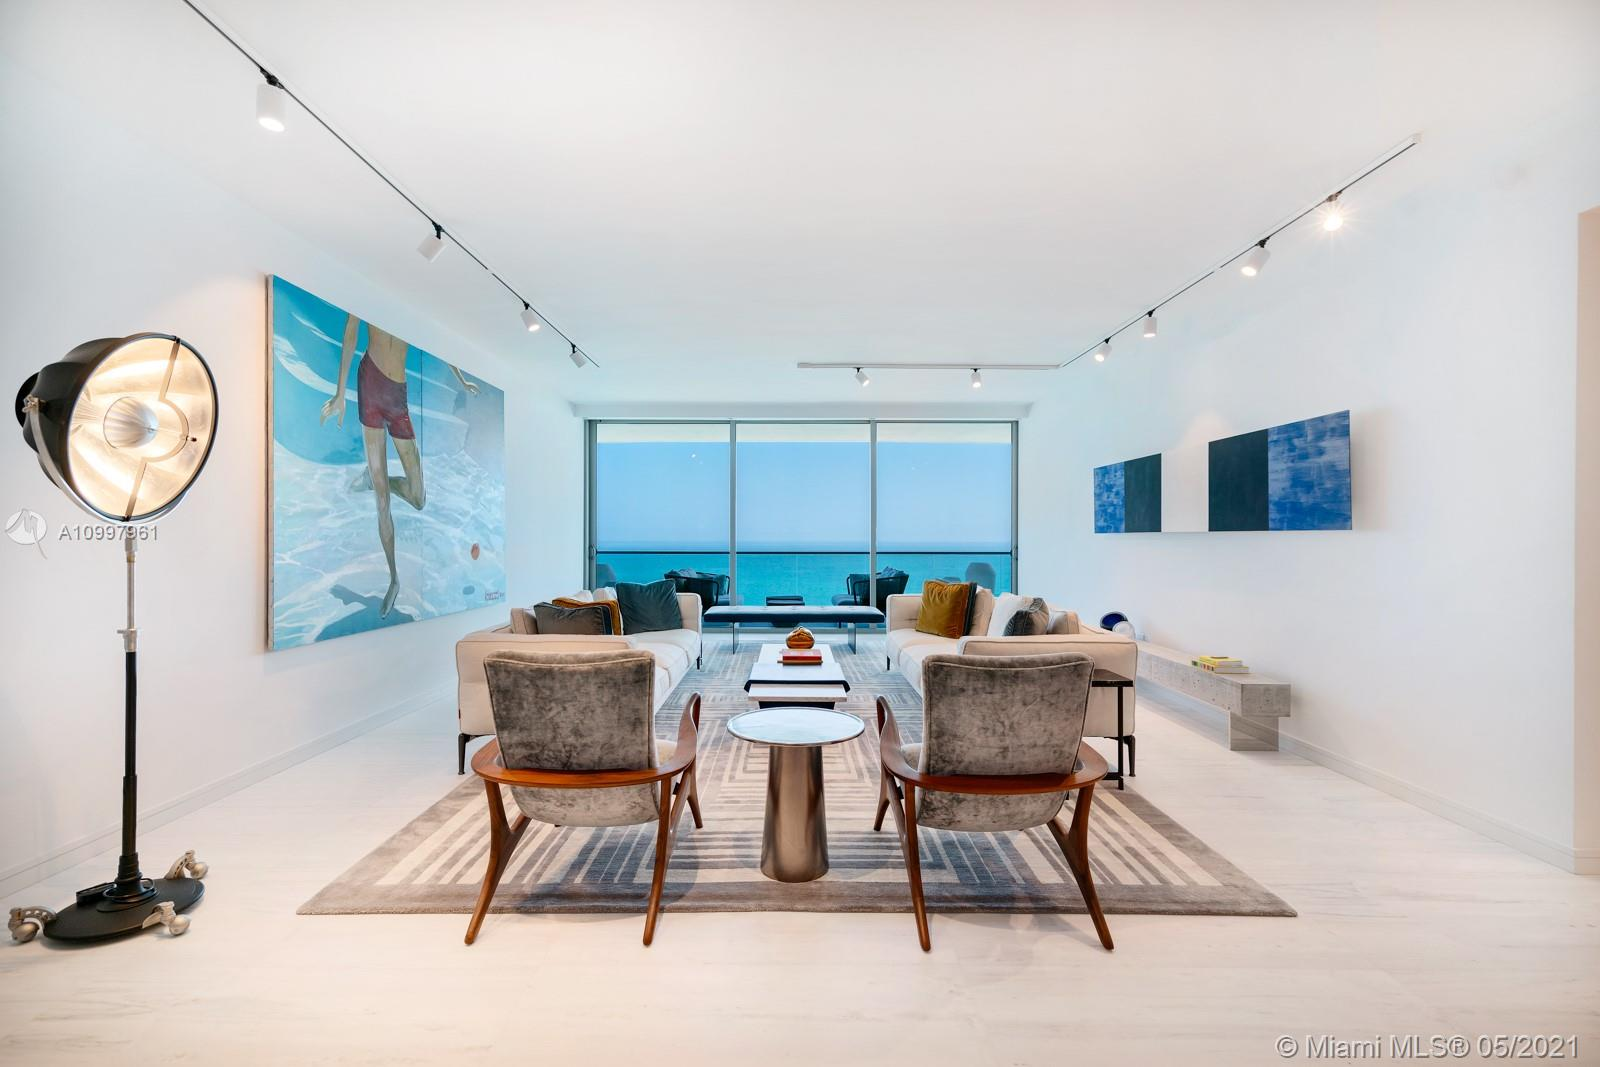 Made for a Design Aficianado! Let good taste reign. The direct Oceanfront residence features 2 Bedrooms + Den/ 3.5 Baths, an expansive 445 SF terrace to experience sunrise, ocean & sky views. This sleek beach pad sports beautiful honed pantelikon marble, tan oak floors in the bedrooms, & custom millwork throughout. The concept of open living/dining/kitchen is embraced and is ideal for hosting. The chef's kitchen features a stand-out calacatta marble center island, & top of the line Gaggenau appliances including a full-size wine fridge. The primary suite boasts a large walk-in closet finished by Italian firm Illimiti, direct terrace access & a stunning bath finished in marble & Ipe wood featuring a rain shower & large Boffi soaking tub. The property is to be appreciated and properly priced